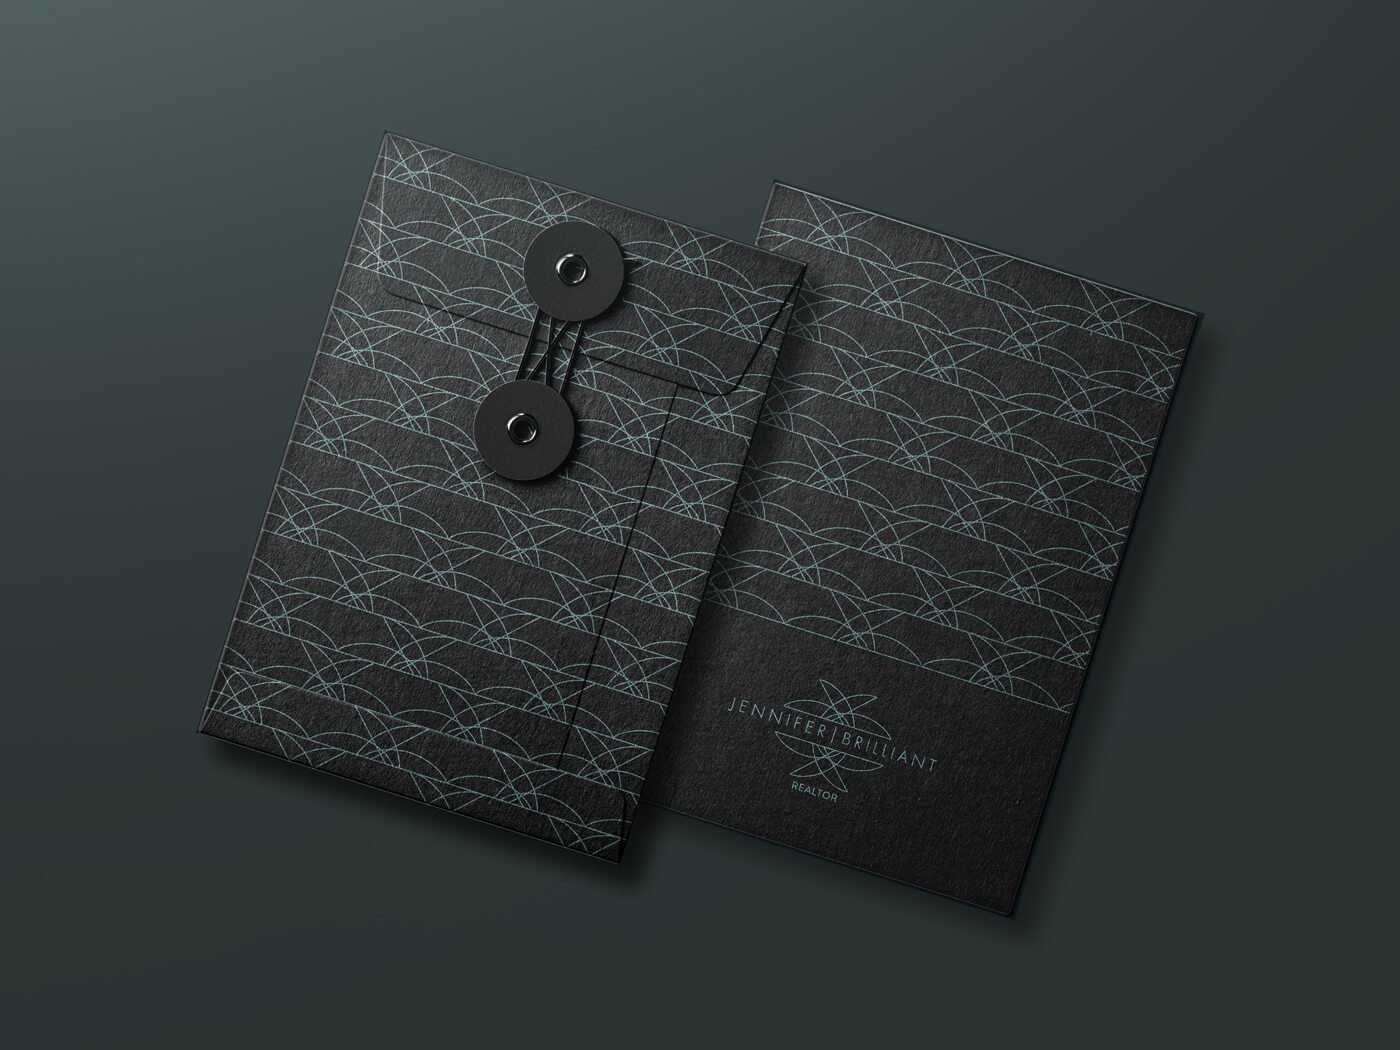 Jacober Creative envelope design for Realtor Jennifer Brilliant. Black folder with pattern and logo